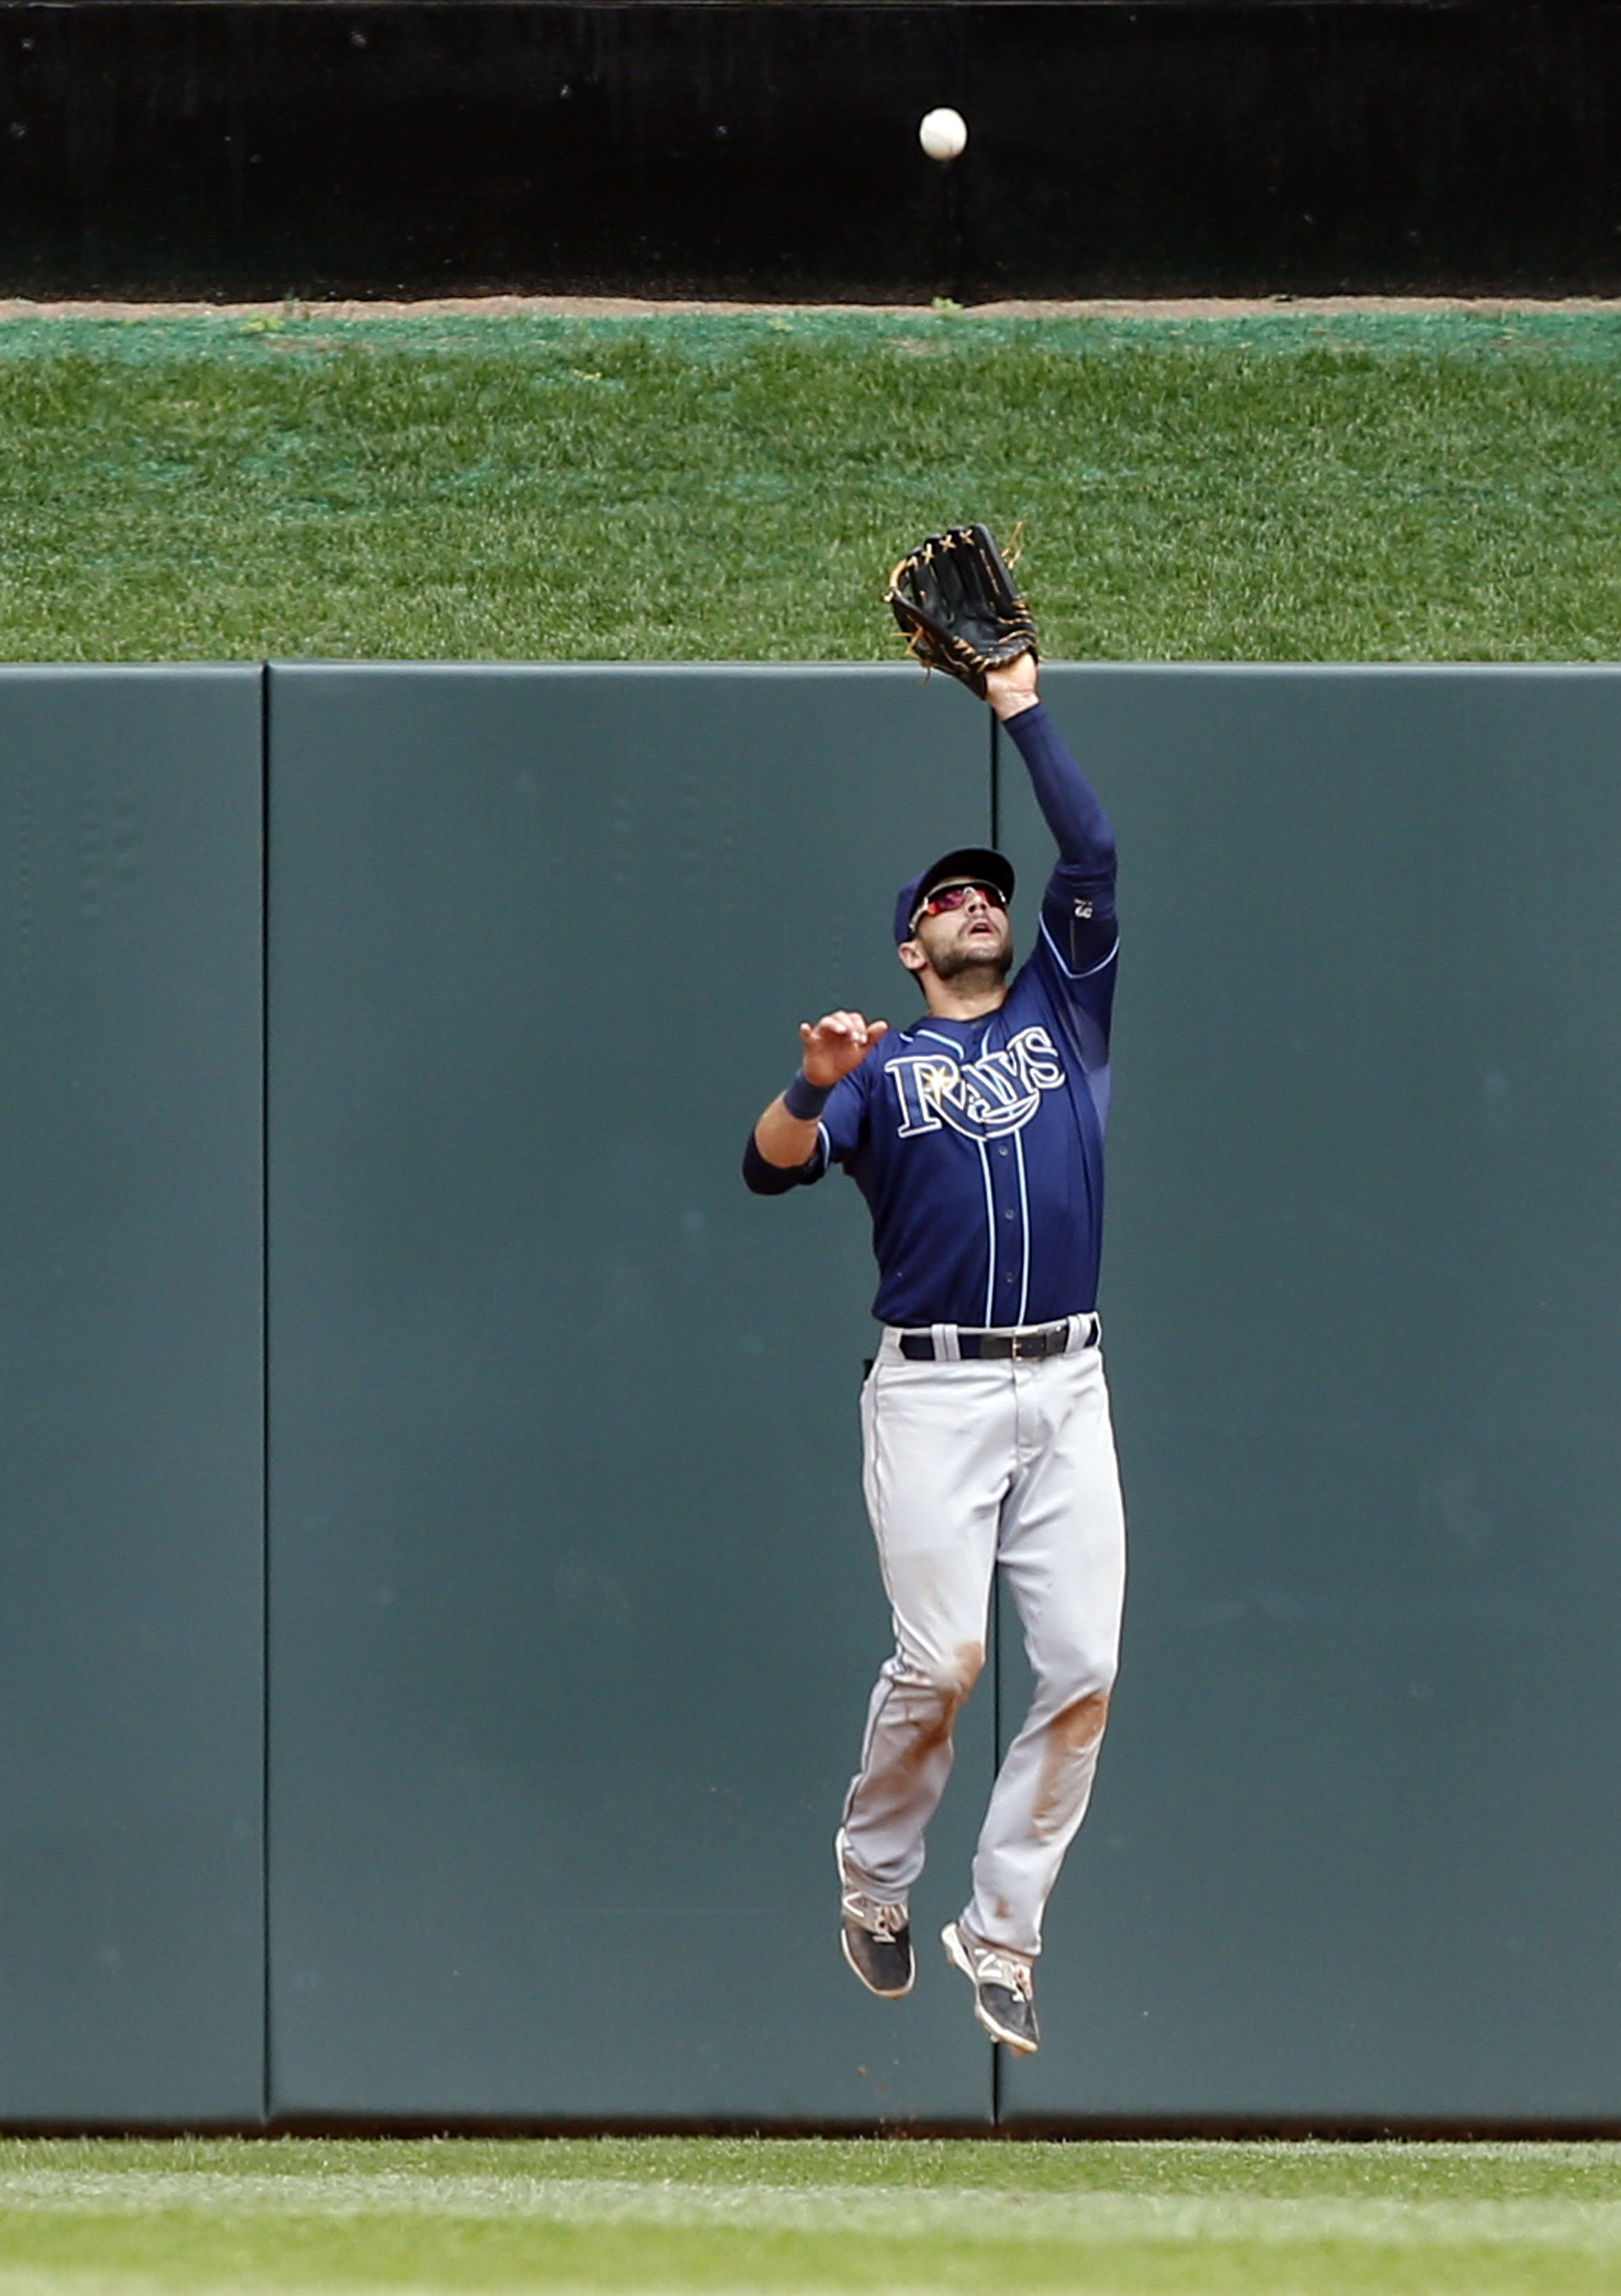 Tampa Bay Rays center fielder Kevin Kiermaier jumps to catch a deep fly ball hit by Minnesota Twins' Brian Dozier in the third inning of a baseball game, Sunday, May 17, 2015, in Minneapolis. (AP Photo/Jim Mone)